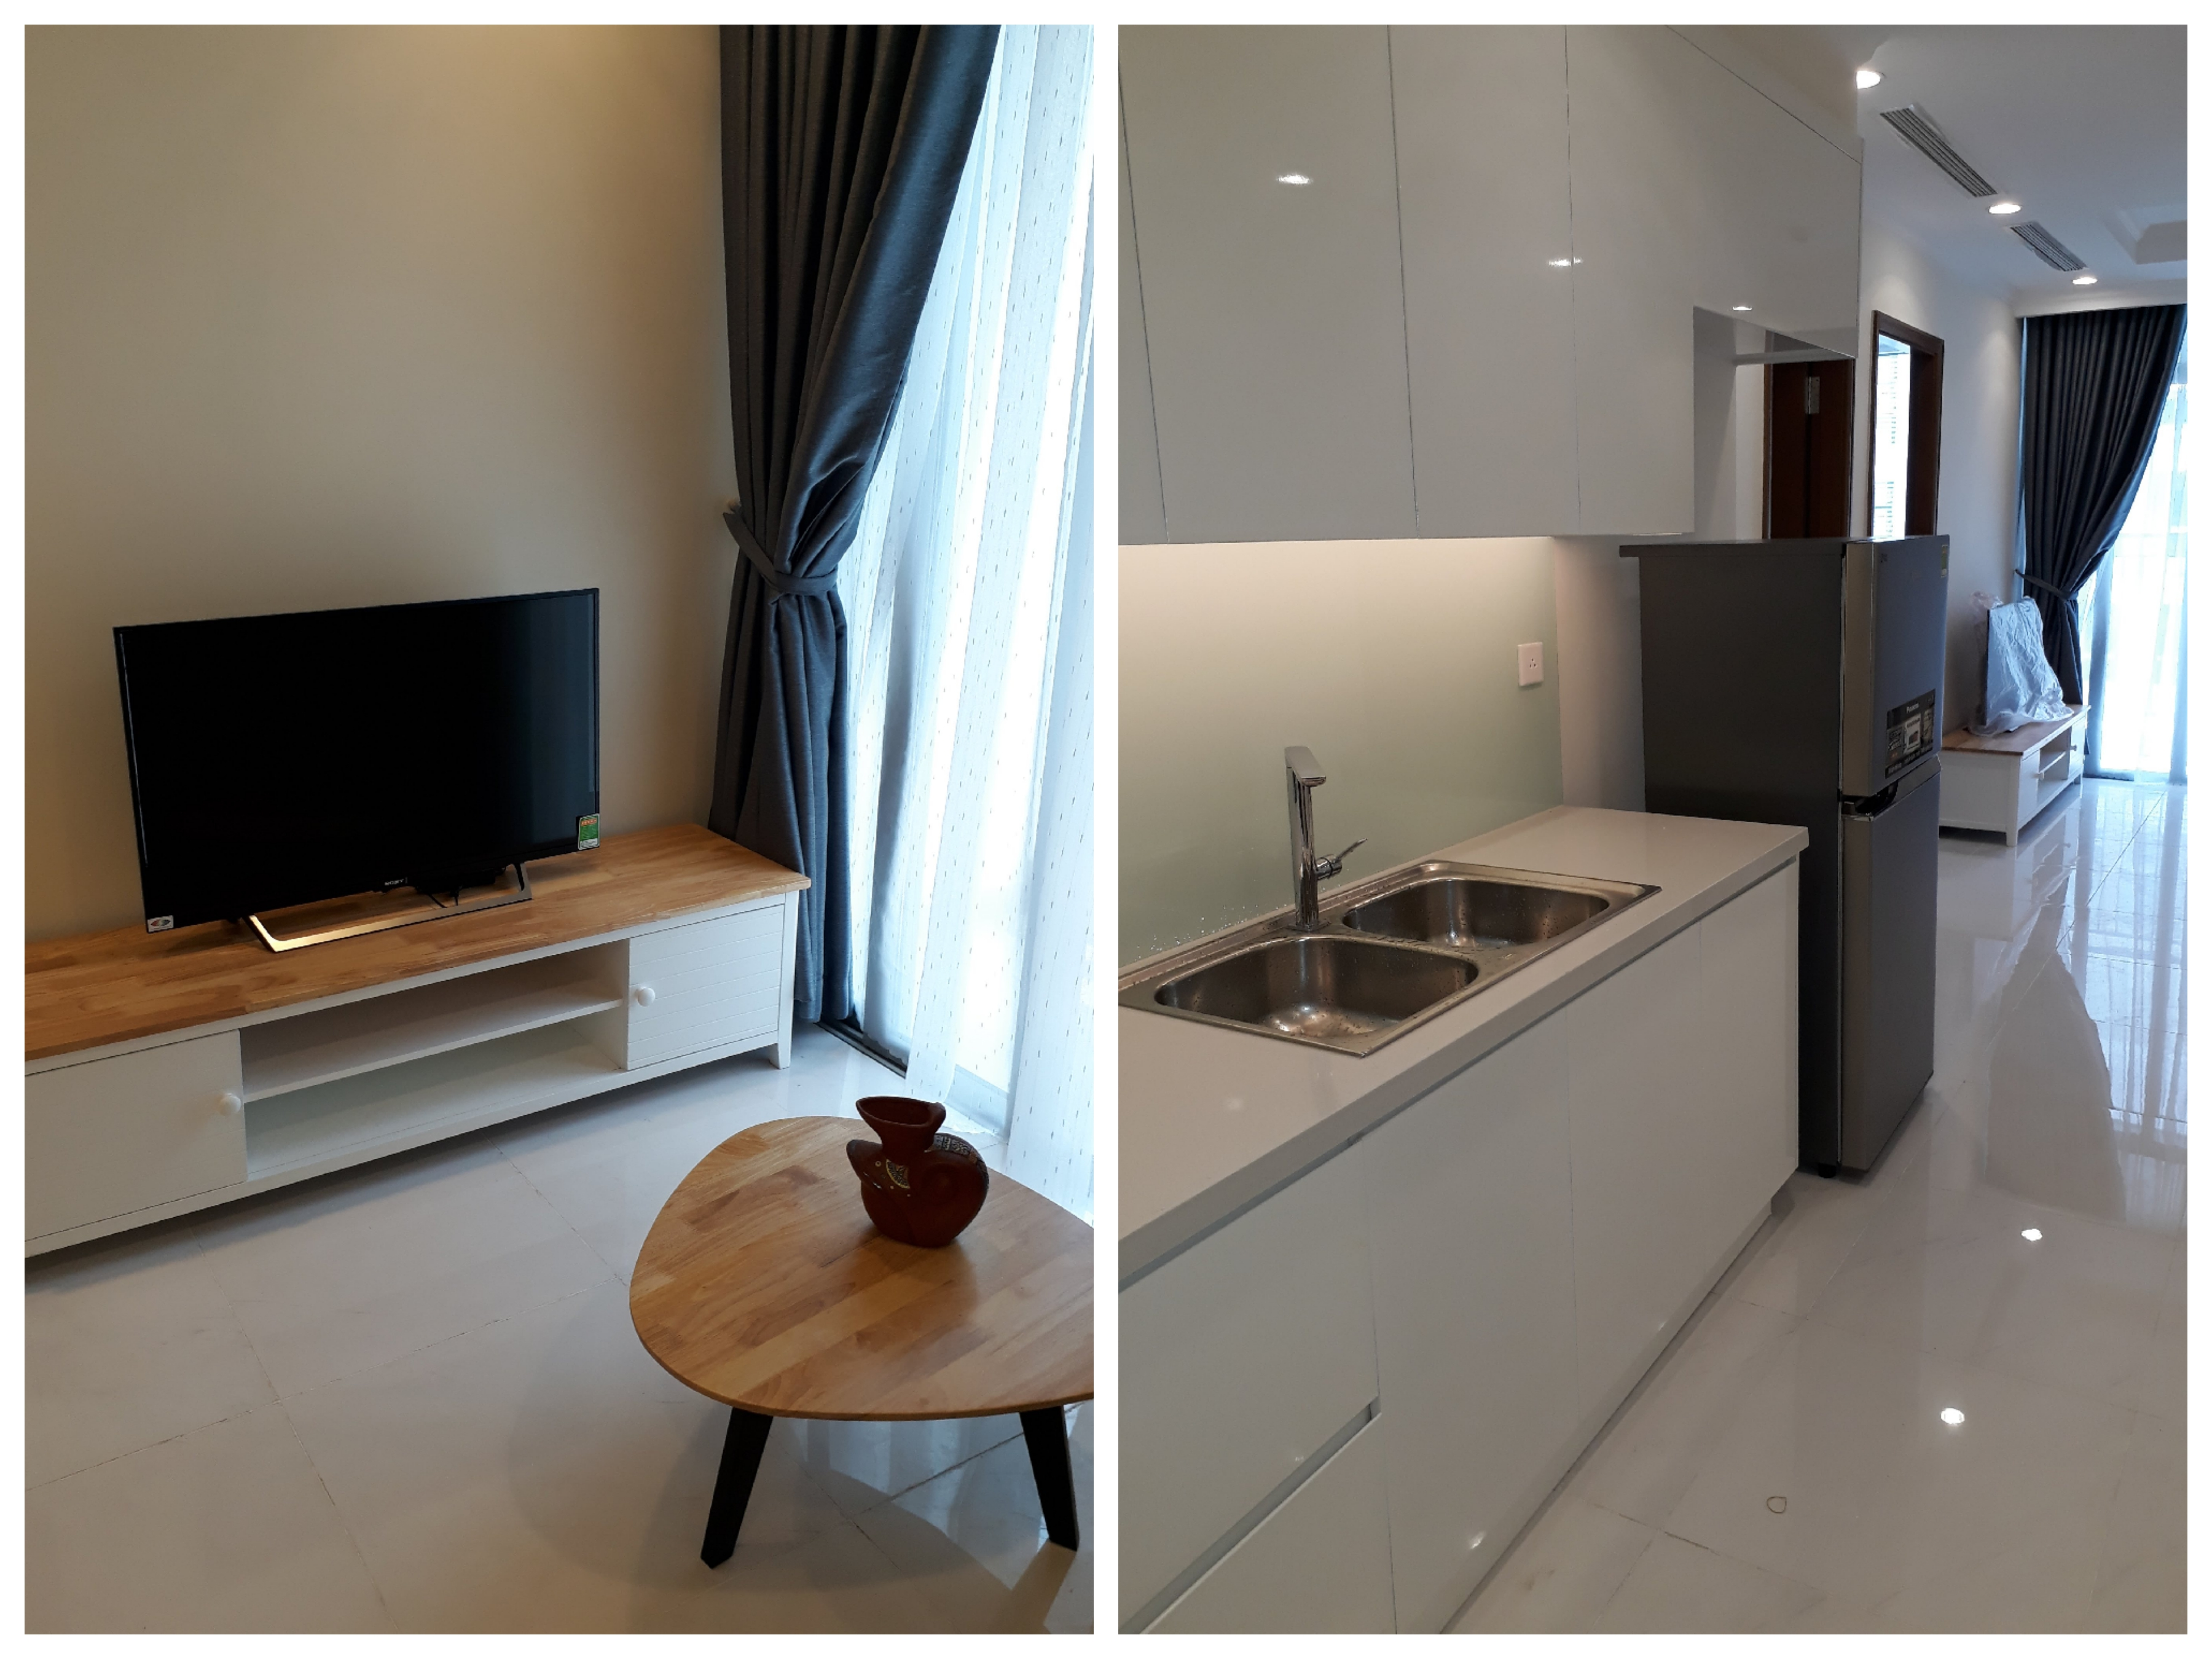 apartment for rent in Vinhomes Central Park Binh Thanh  District HCM  BT105L2461 (3)